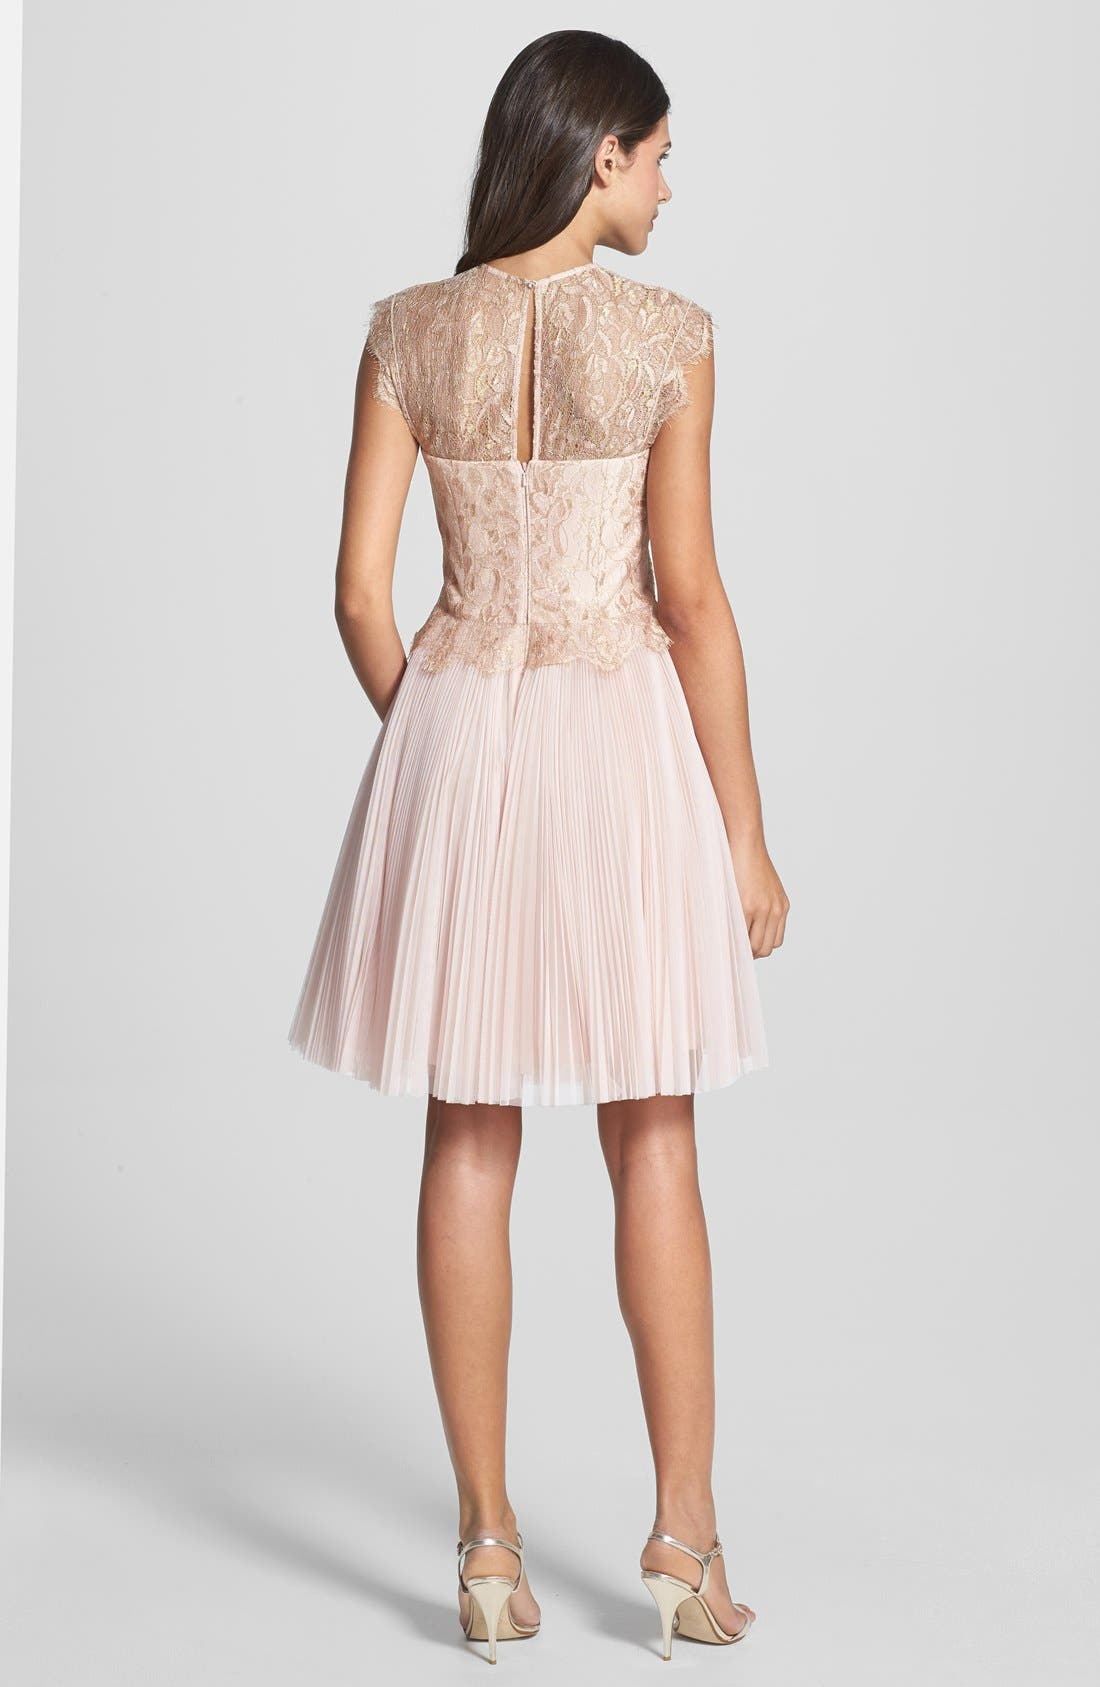 'Remma' Metallic Lace Overlay Fit & Flare Dress,                             Alternate thumbnail 2, color,                             Nude Pink